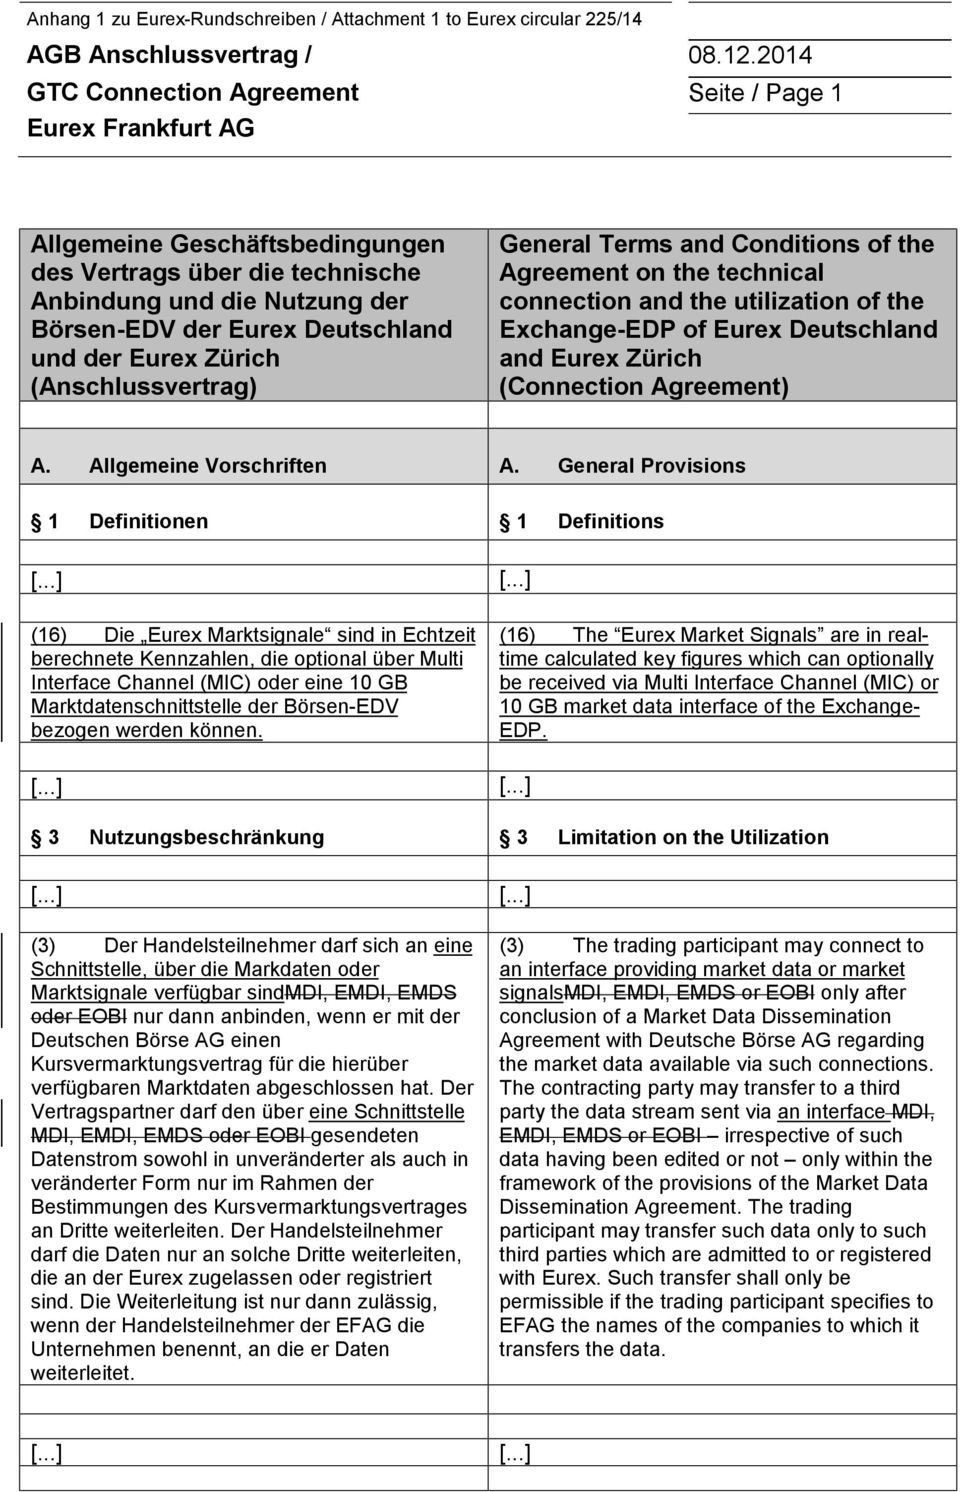 Eurex Zürich (Anschlussvertrag) General Terms and Conditions of the Agreement on the technical connection and the utilization of the Exchange-EDP of Eurex Deutschland and Eurex Zürich (Connection